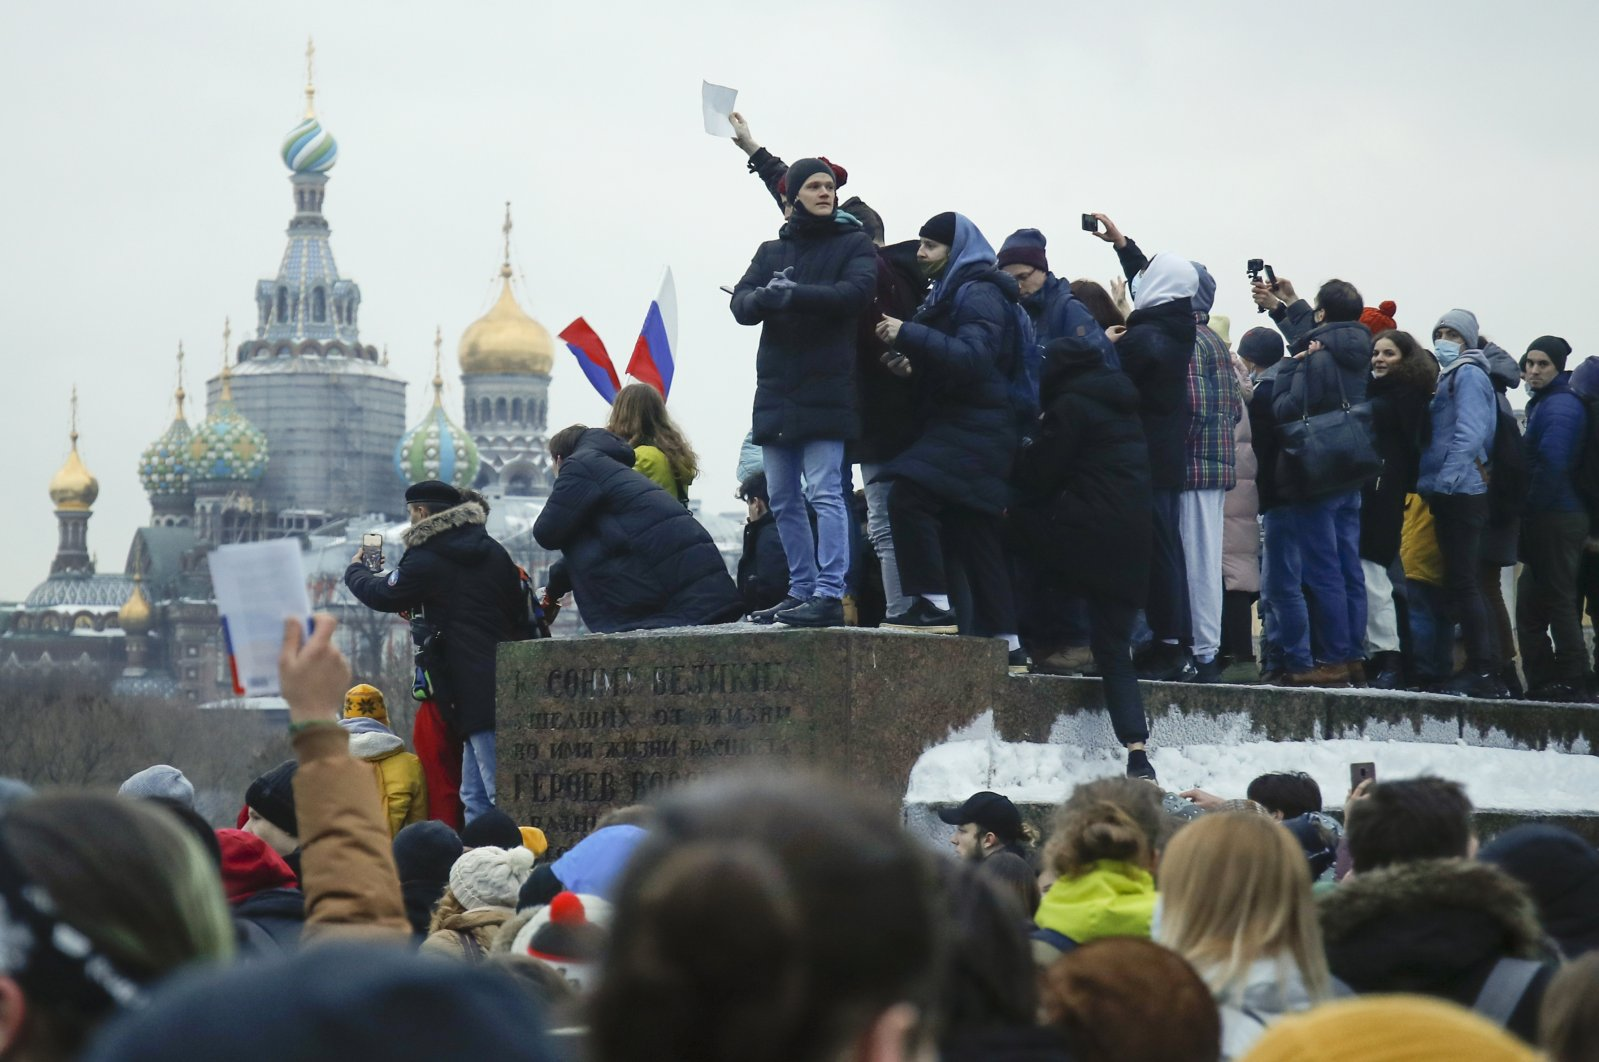 People gather to protest against the jailing of opposition leader Alexei Navalny in St.Petersburg, Russia, Saturday, Jan. 23, 2021. (AP Photo)